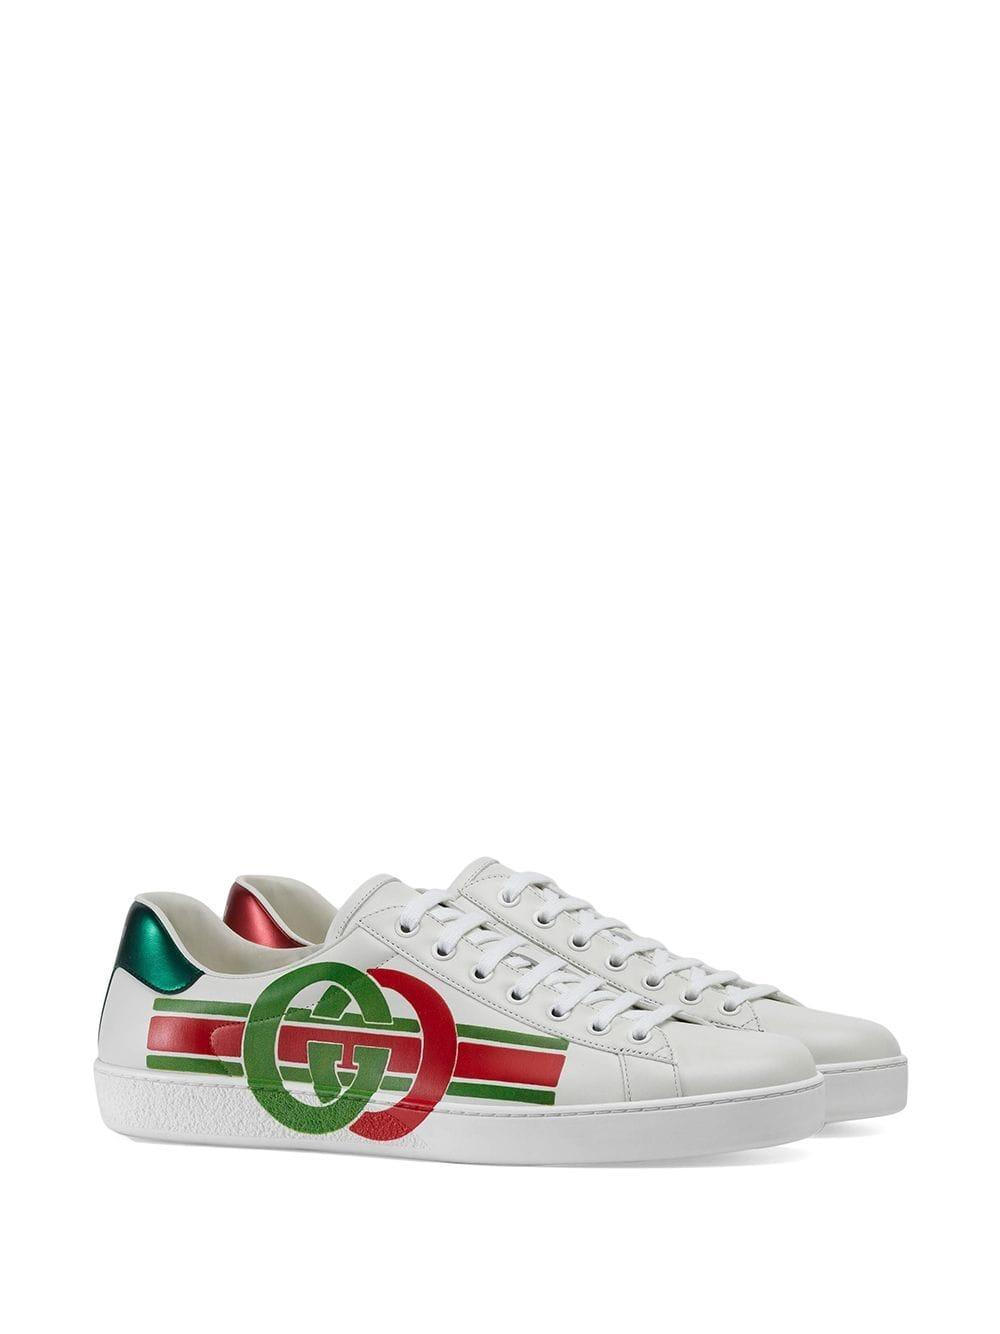 cc55f757f Gucci Ace Sneakers With GG Print in White for Men - Lyst